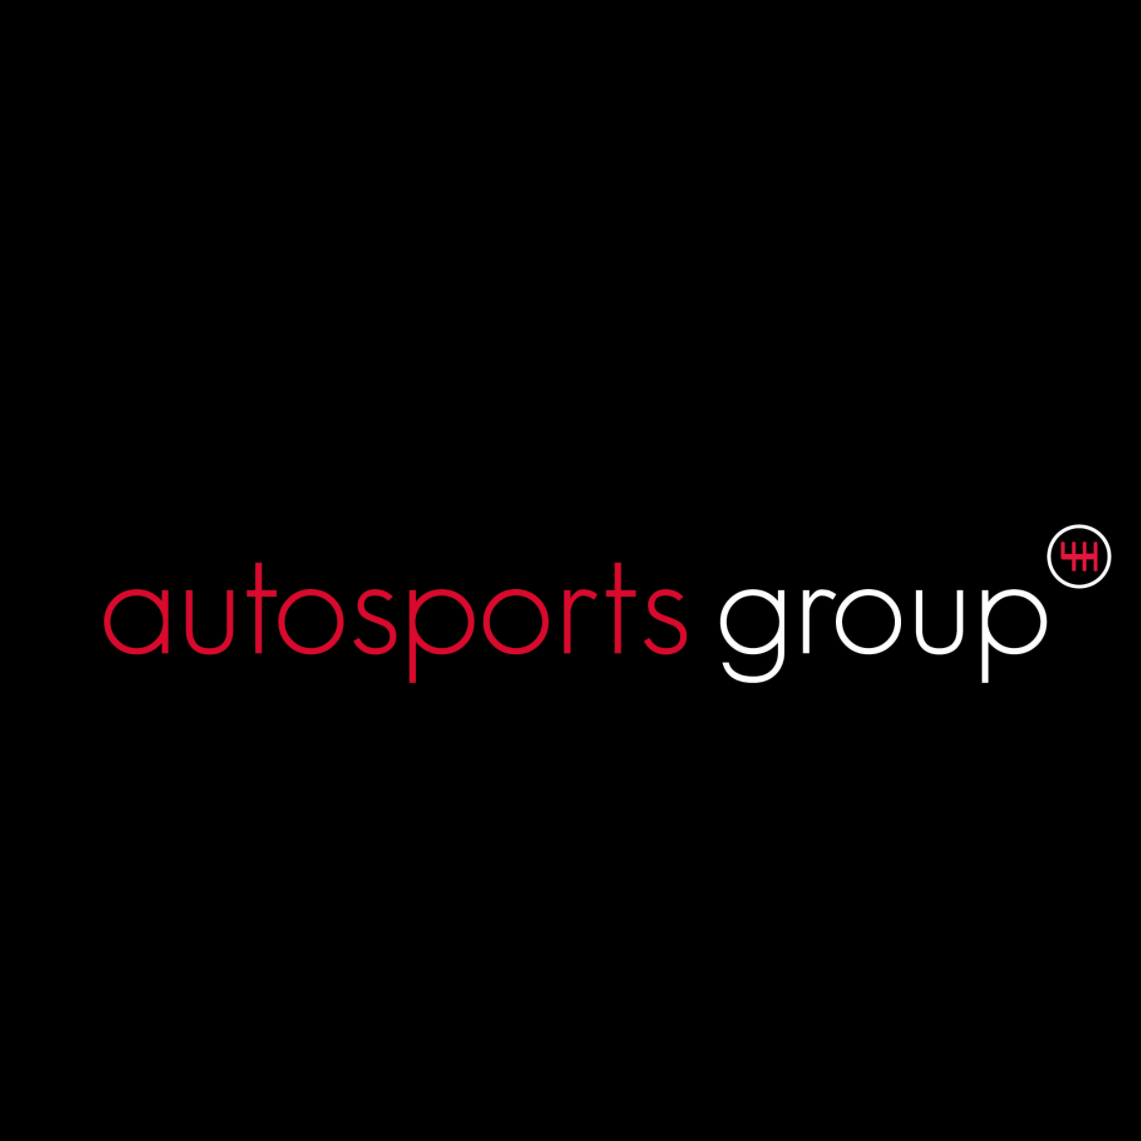 AUTOSPORTS GROUP LIMITED.